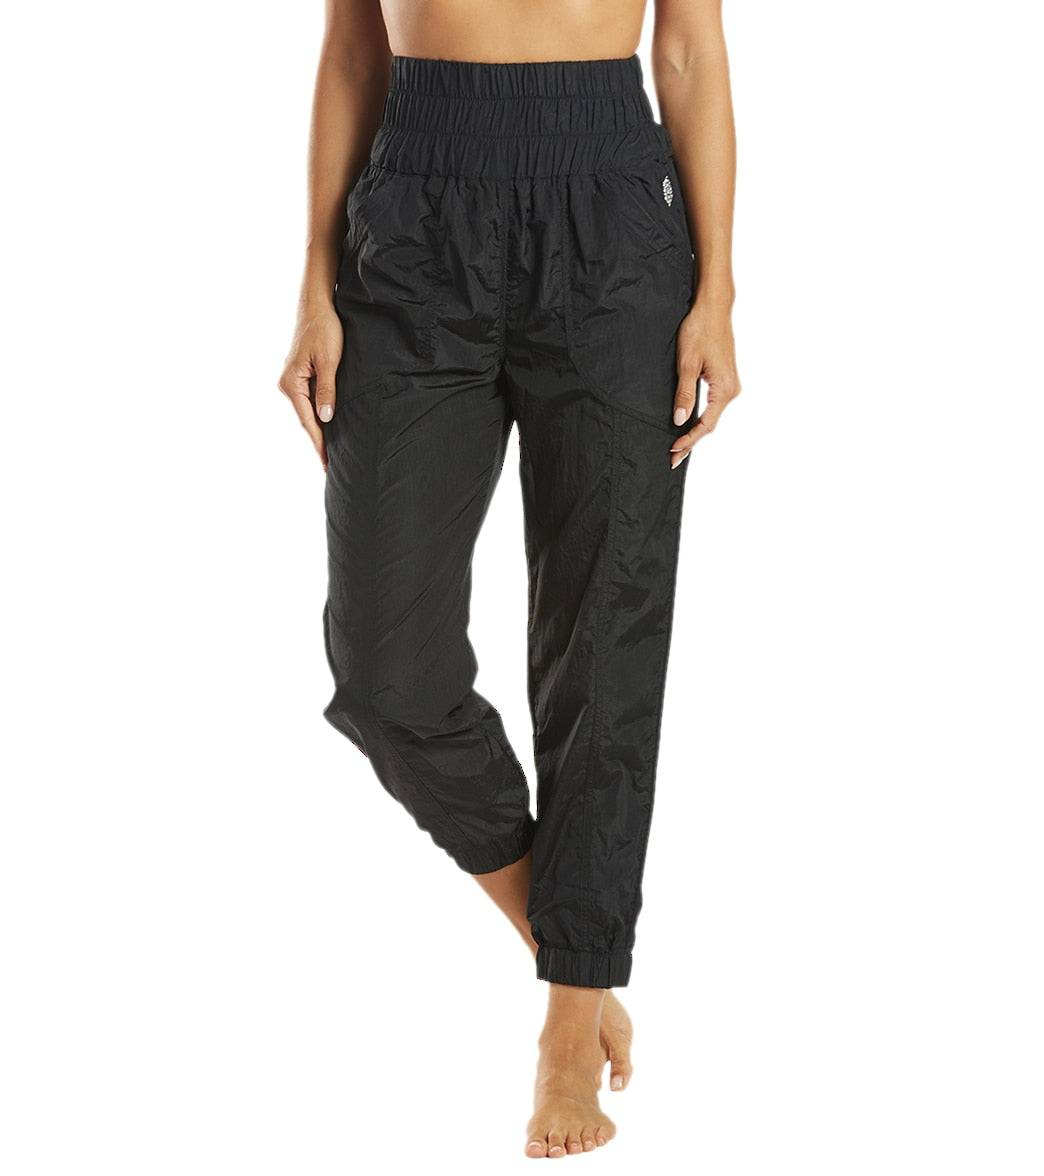 Free People Women's The Way Home Jogger Pants - Black - Large Spandex